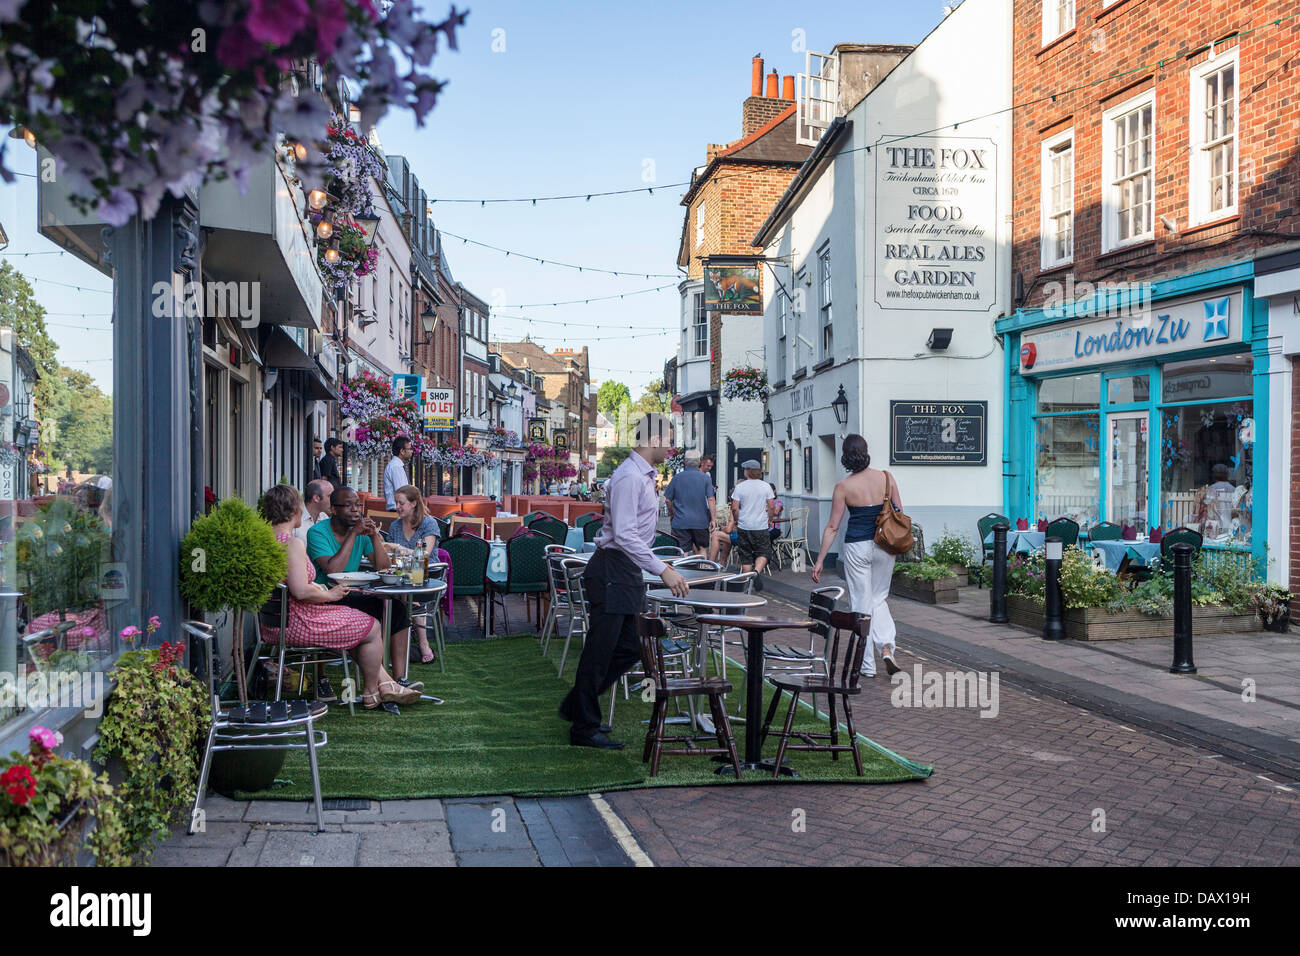 The road is closed and tables are set out for alfresco dining in summer in Church street, Twickenham, UK - Stock Image